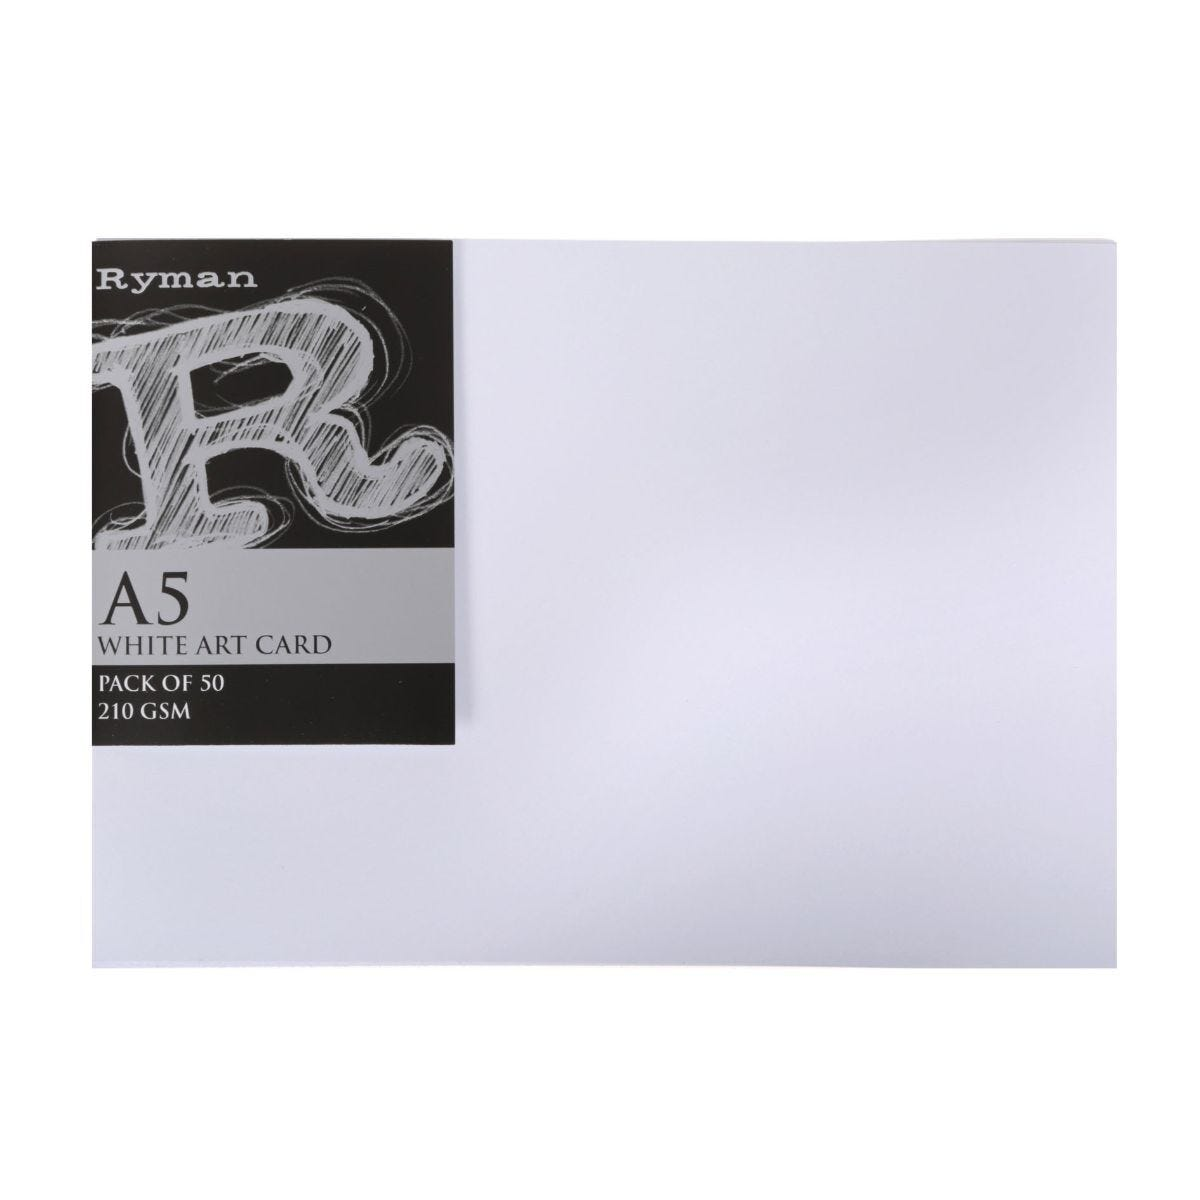 Ryman Art Card A5 210gsm Pack of 50 White